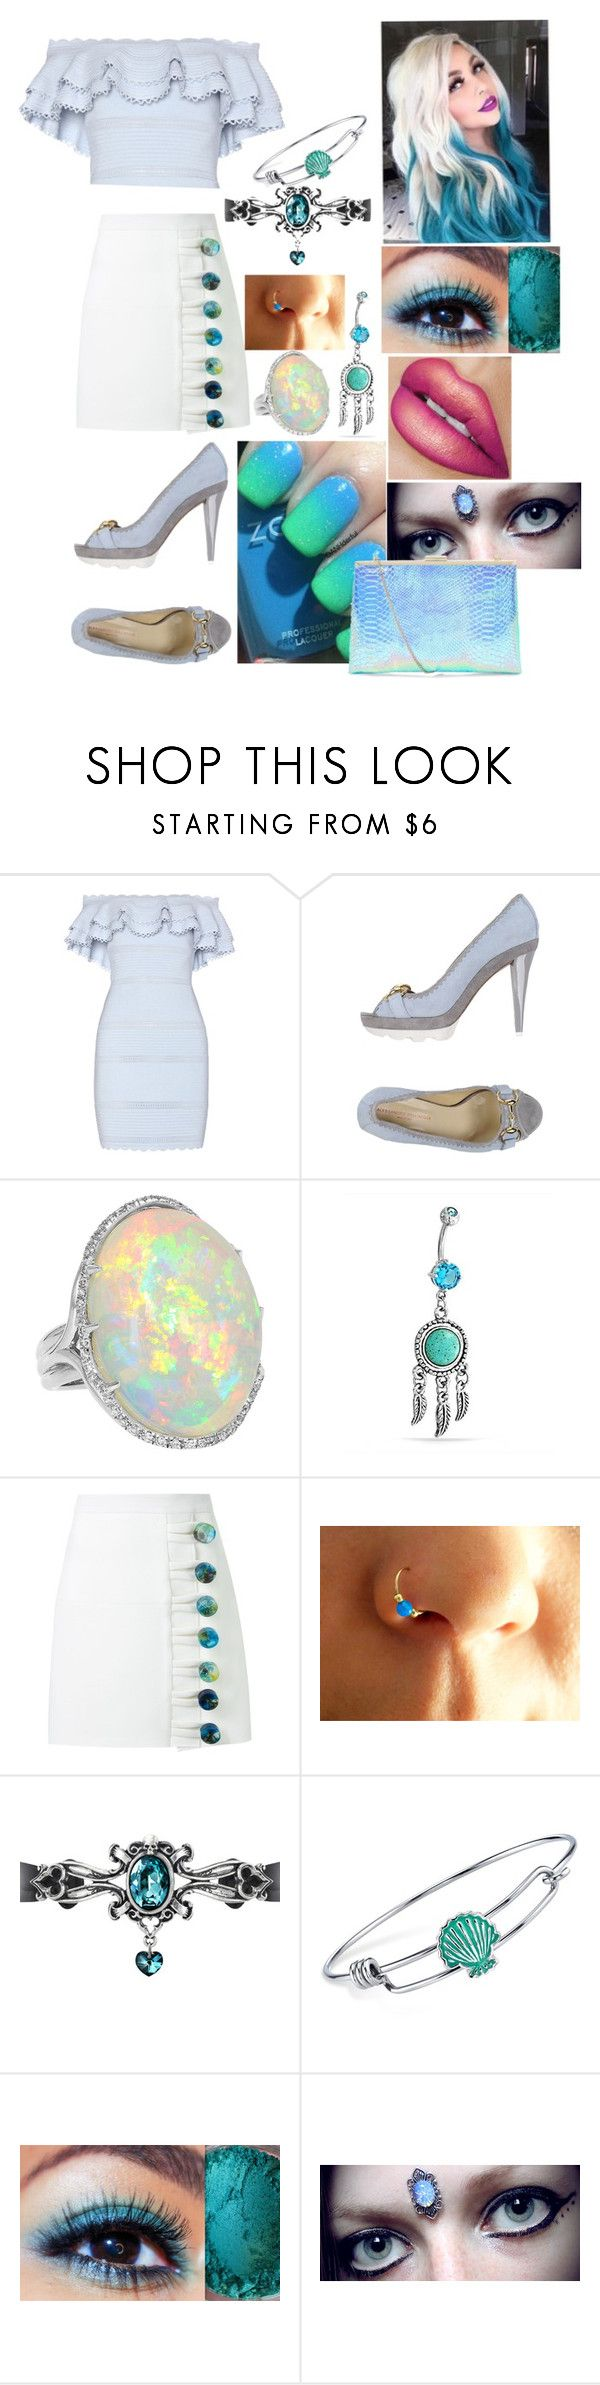 """Untitled #1687"" by mermaids533 ❤ liked on Polyvore featuring Alexander McQueen, Alessandro Dell'Acqua, Bling Jewelry, Christopher Esber and Disney"